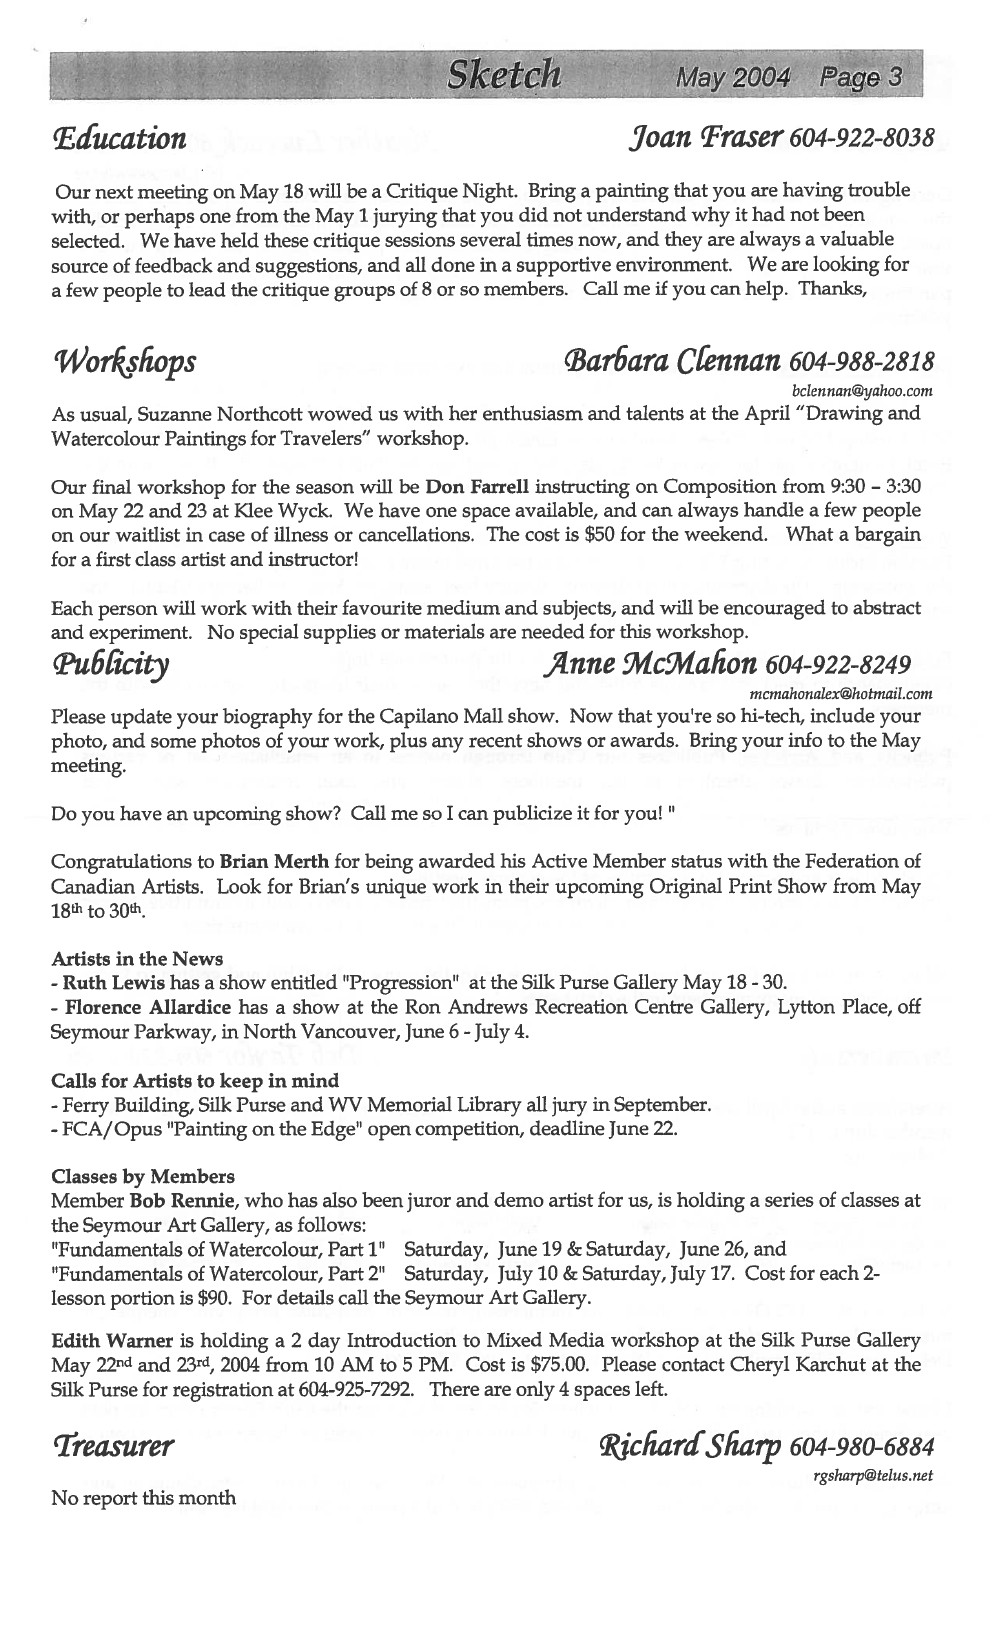 West Vancouver Sketch Club (North Shore Artists' Guild) (20090101), May 2004